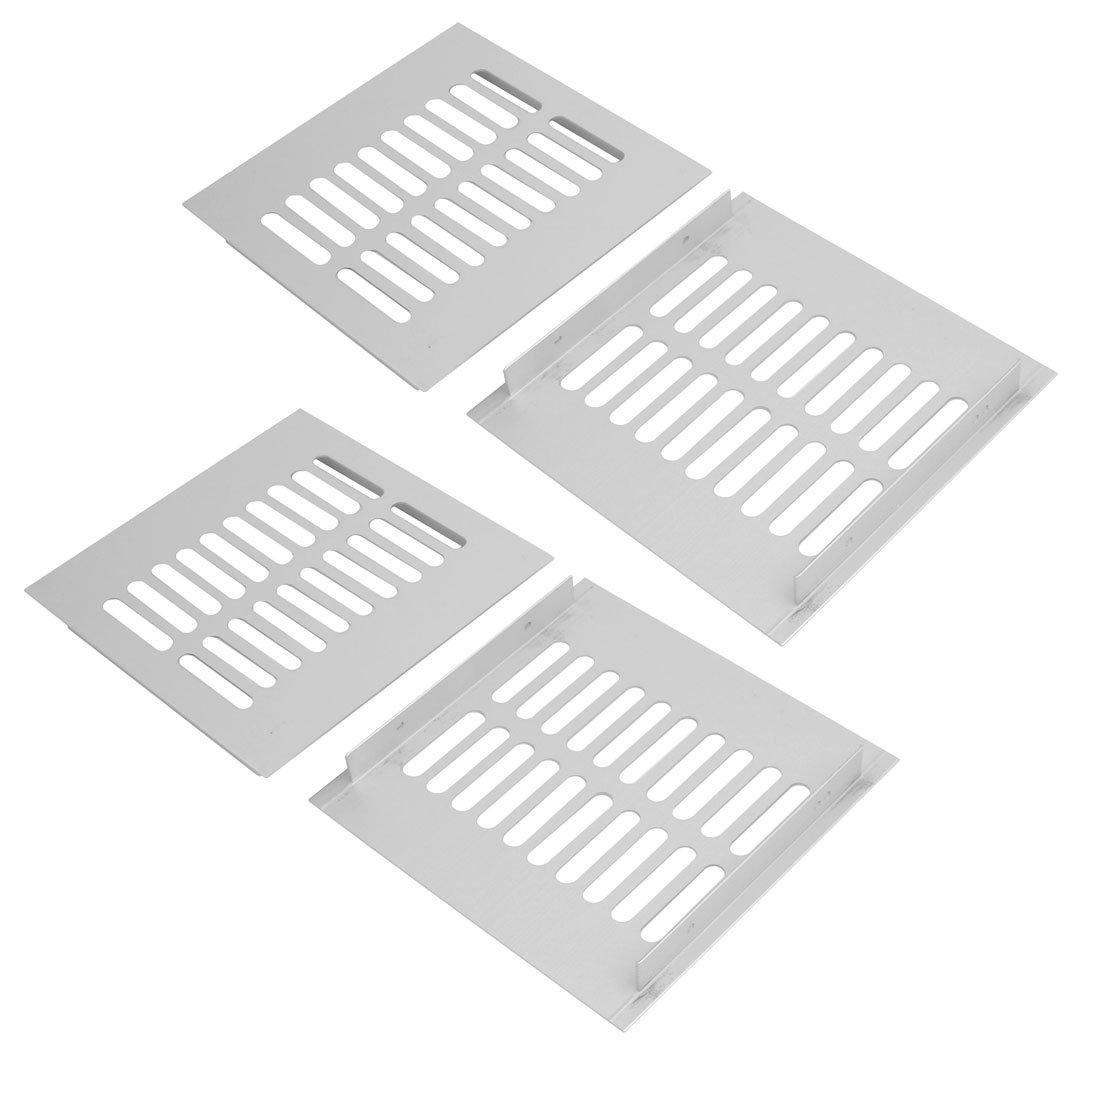 uxcell 4pcs 150mmx150mm Aluminum Alloy Air Vent Louvered Grill Cover Ventilation Grille